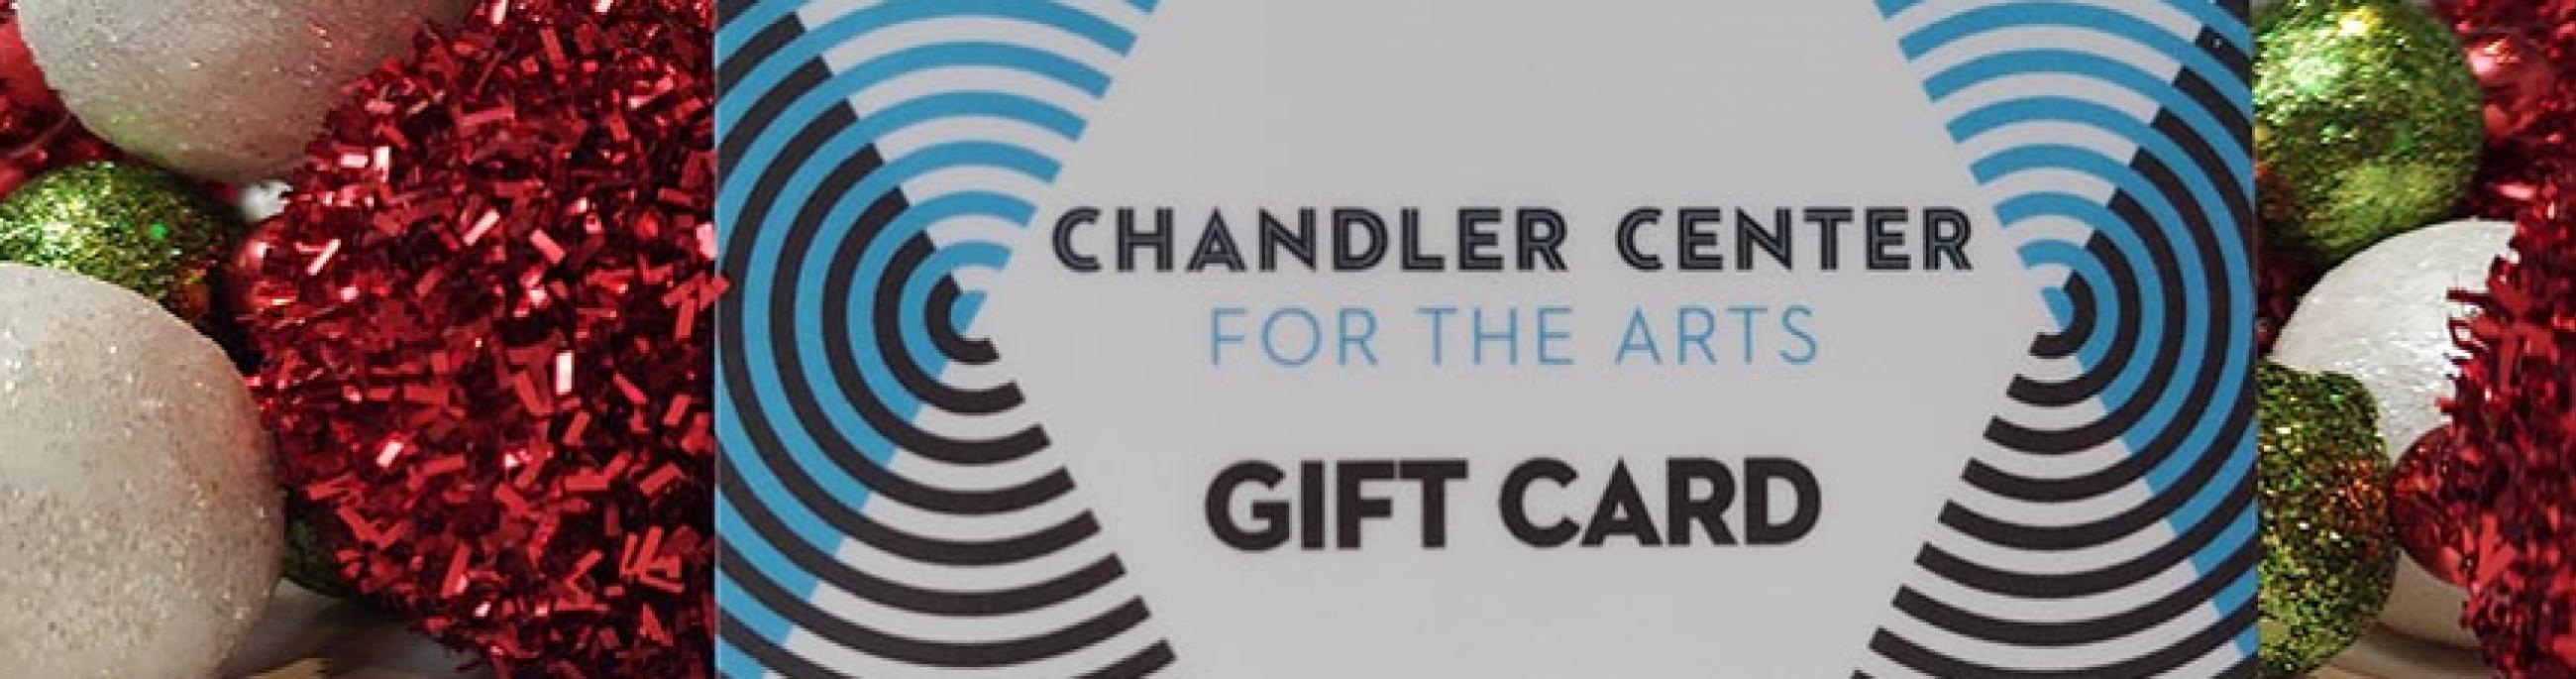 Chandler Center for the Arts gift cards